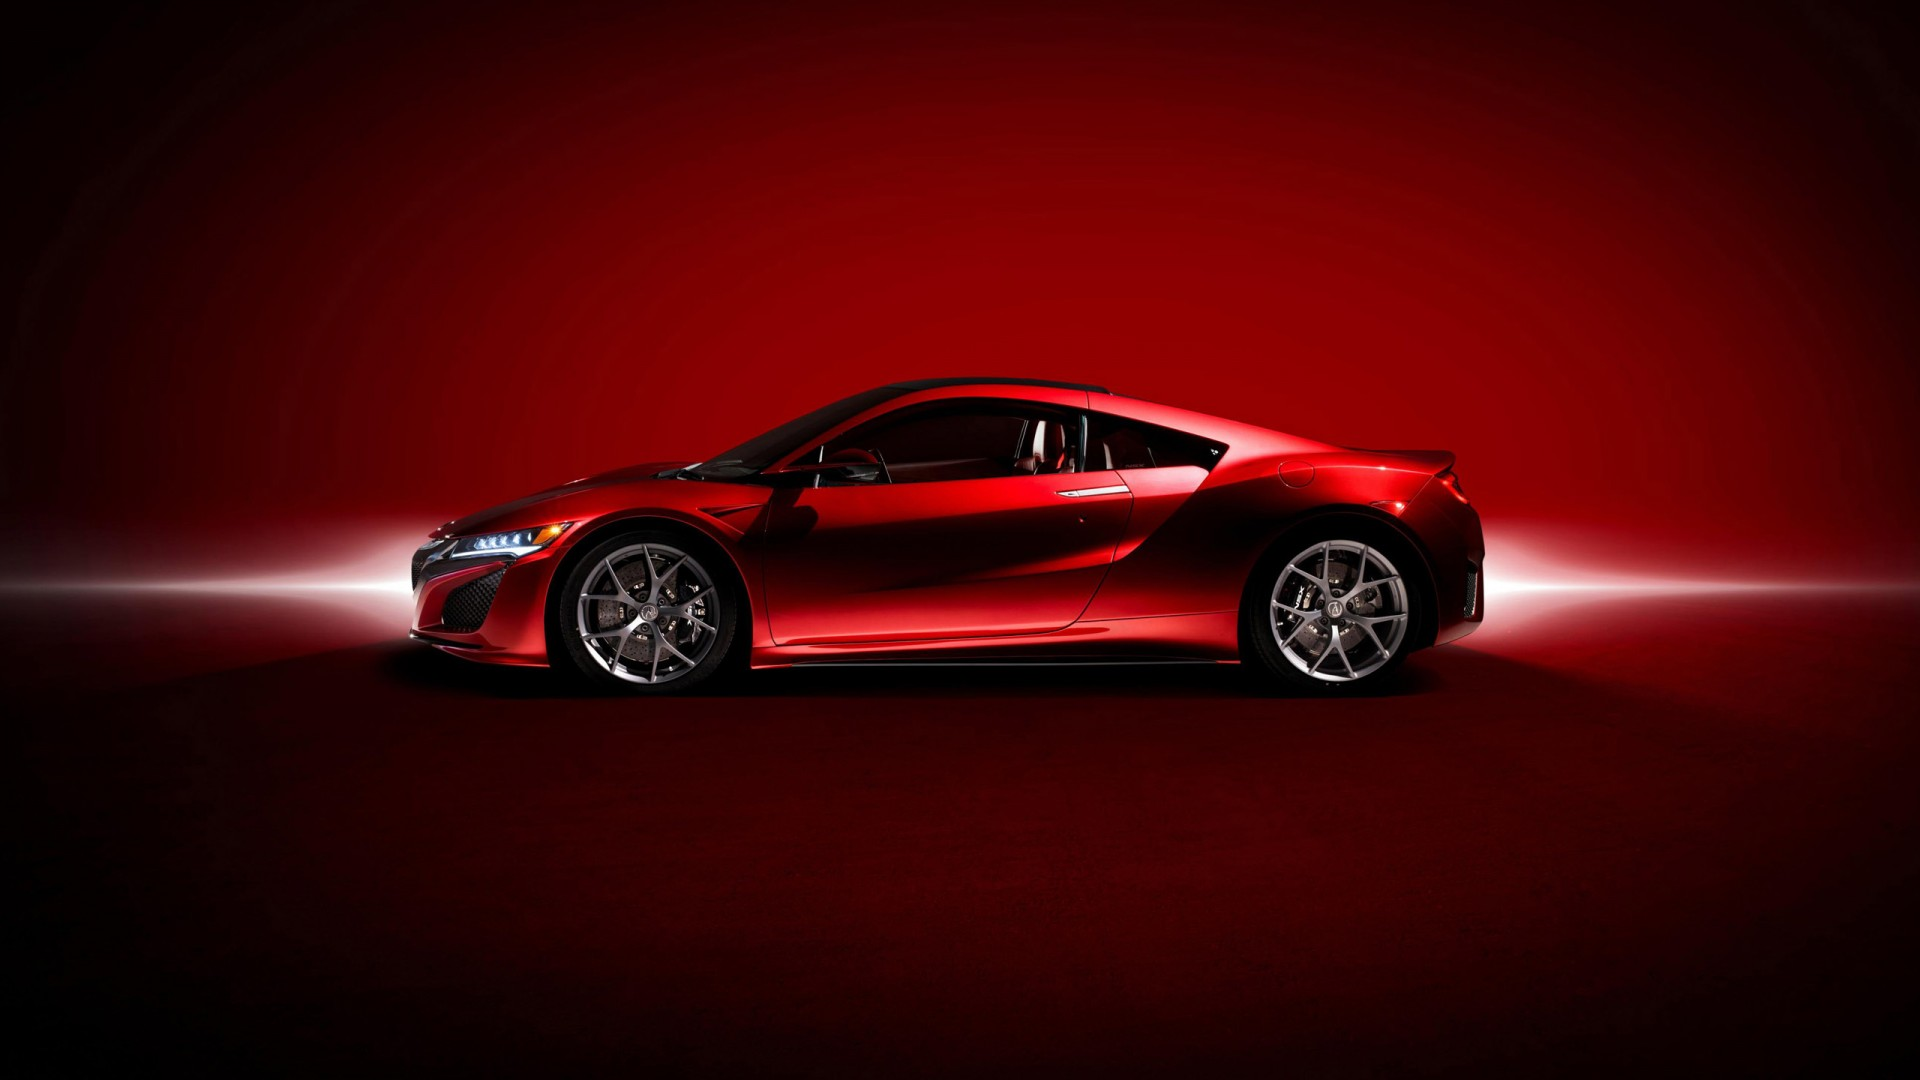 Acura Nsx 2017 Wallpaper Hd Car Wallpapers Id 6575